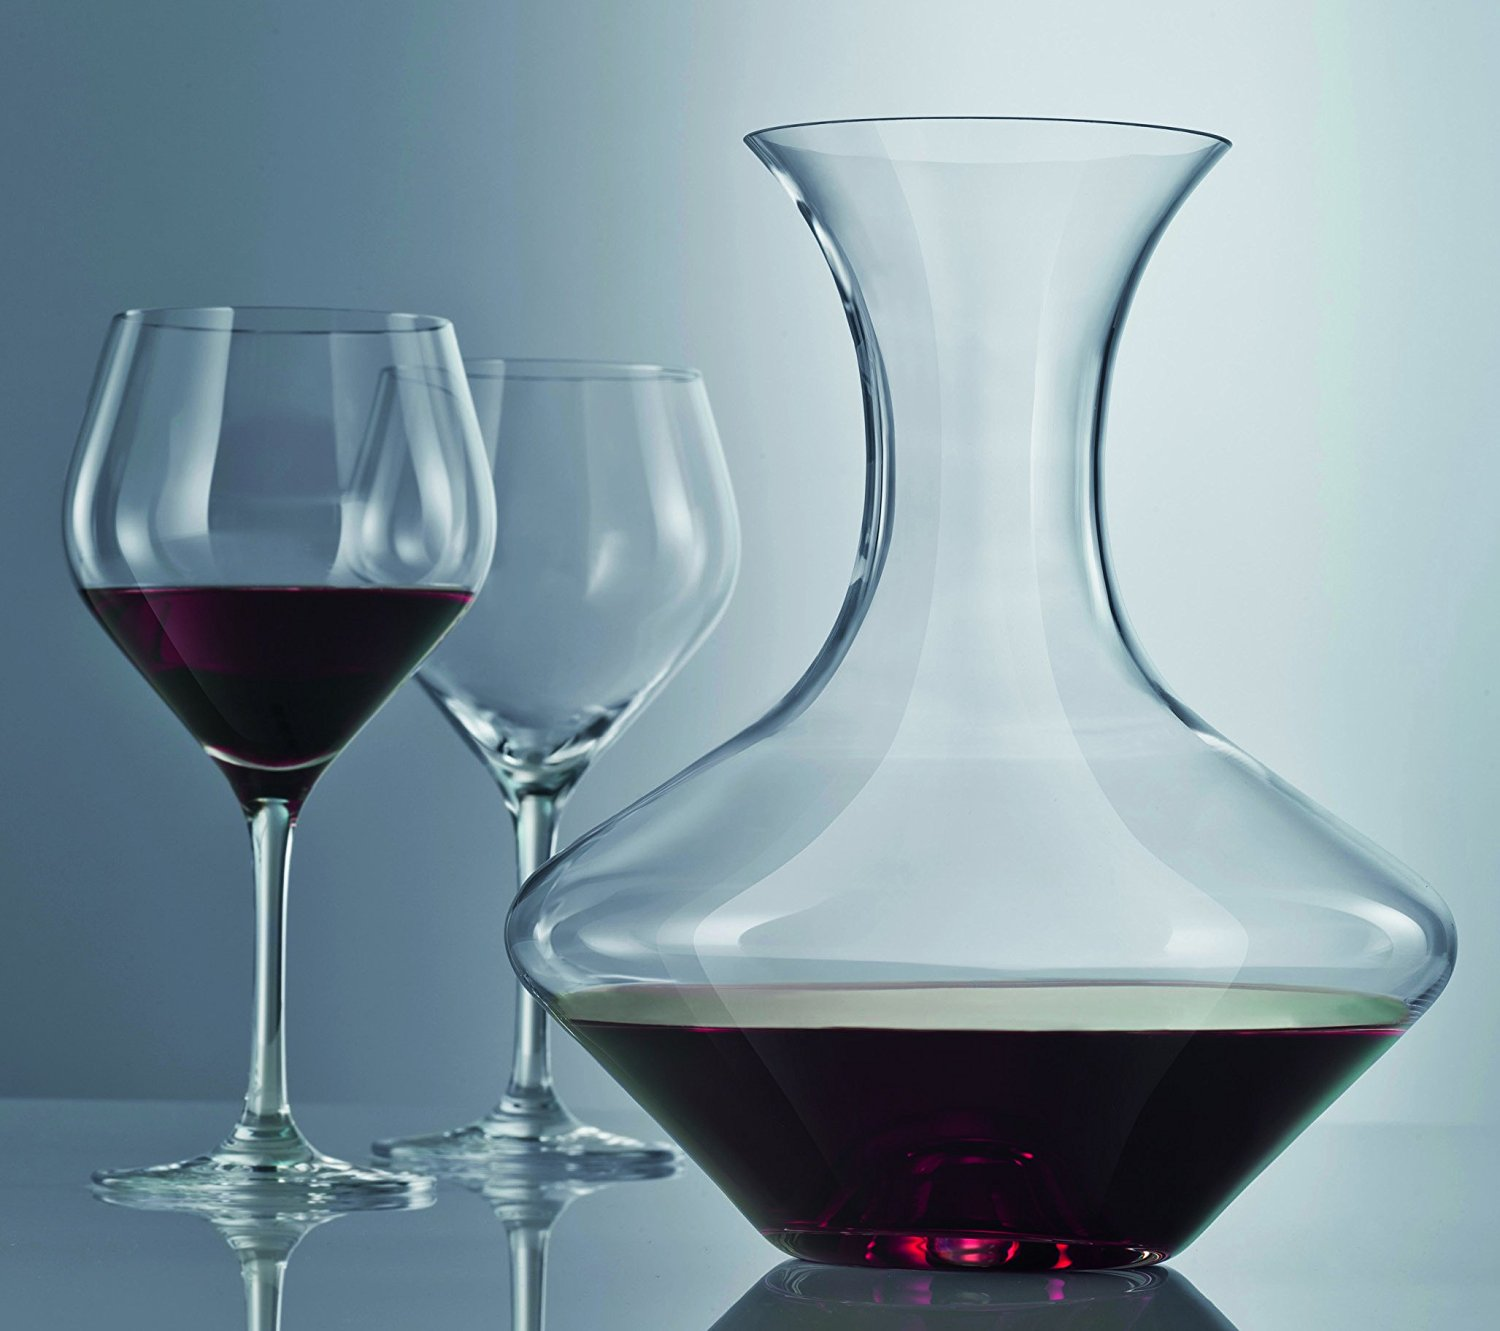 Fortessa Com | Commercial Tableware | Schott Zwiesel Wine Glasses